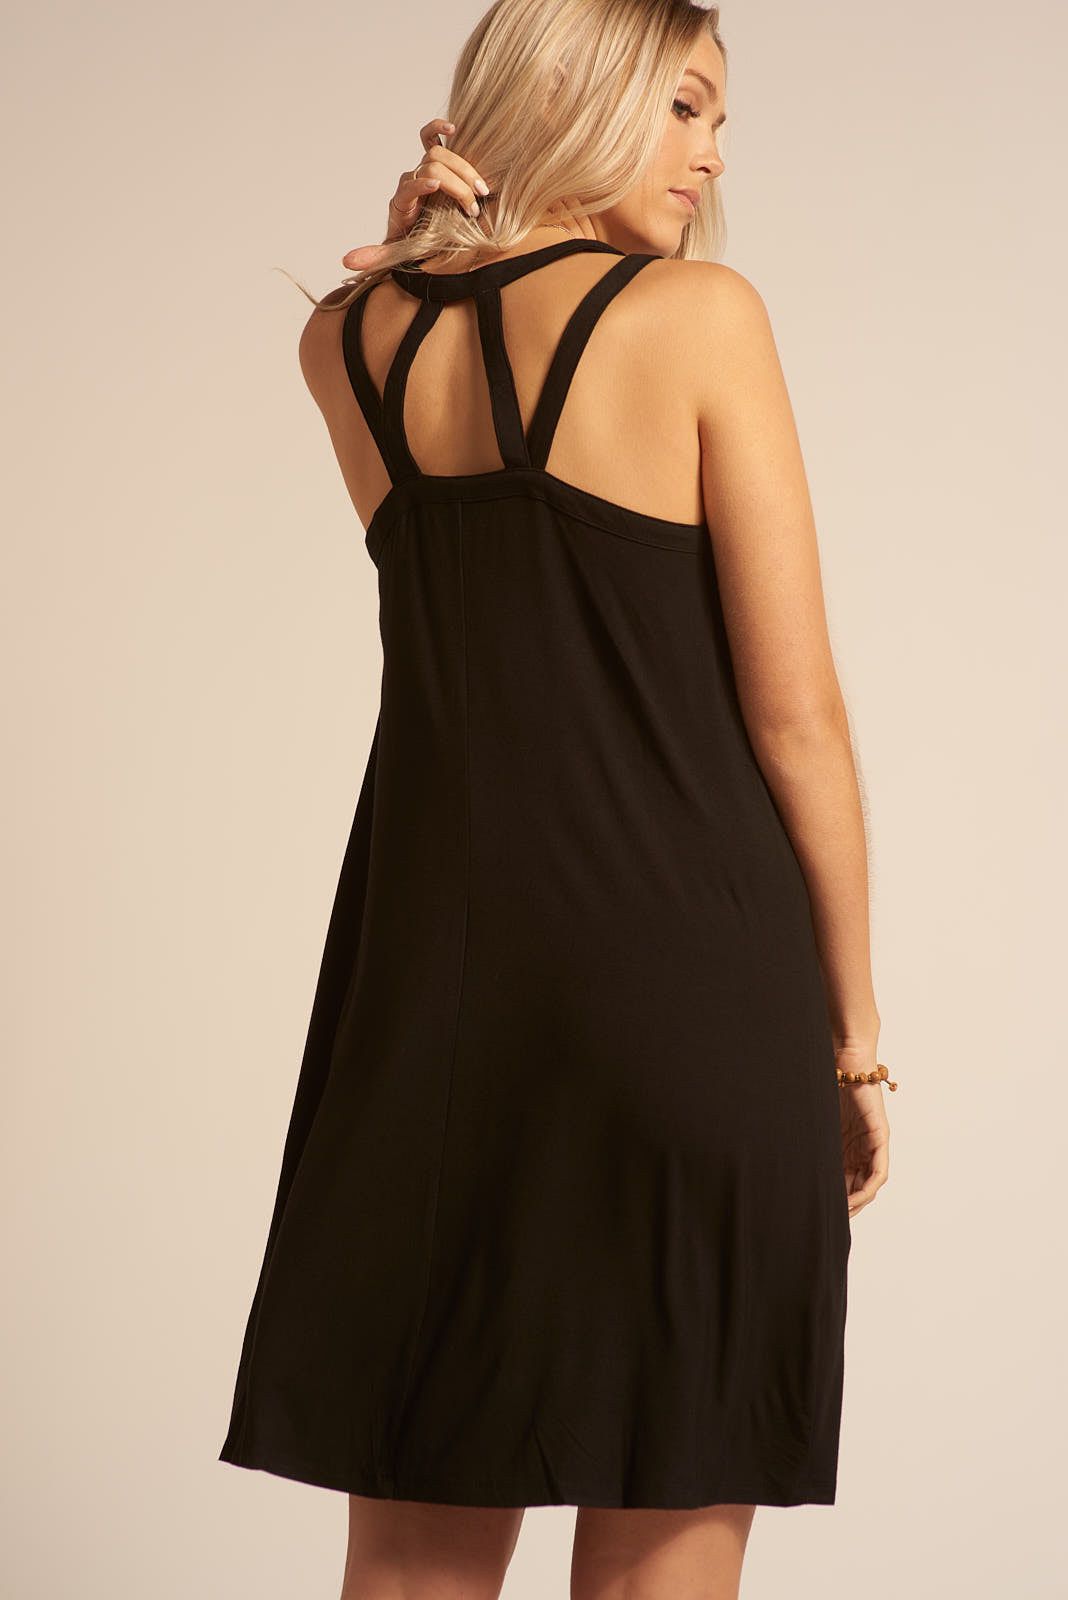 Laguna Strappy Dress